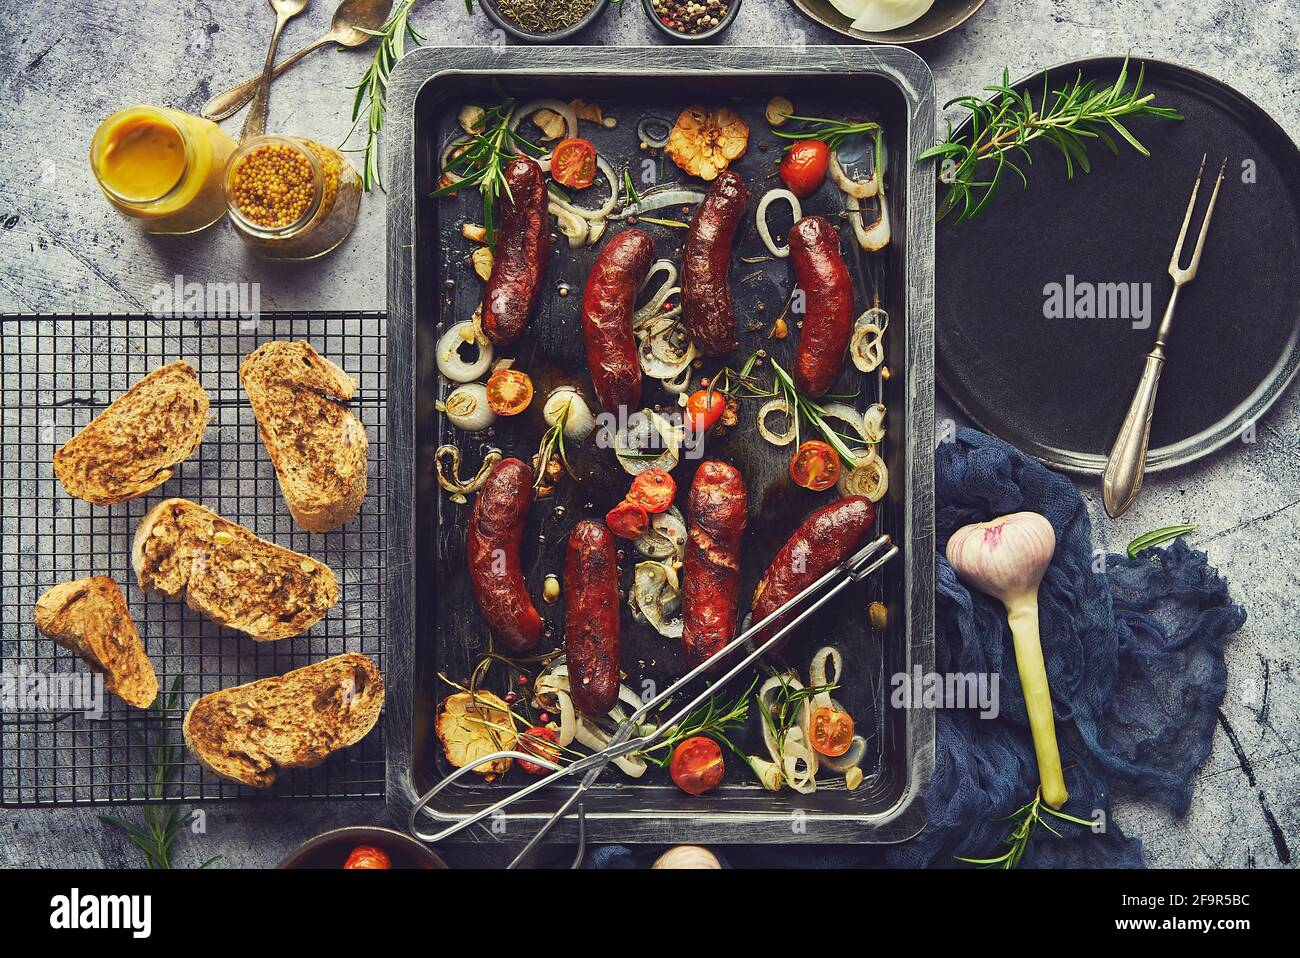 Delicious grilled sausages served on metal rusty tray. With barbecued vegetables Stock Photo